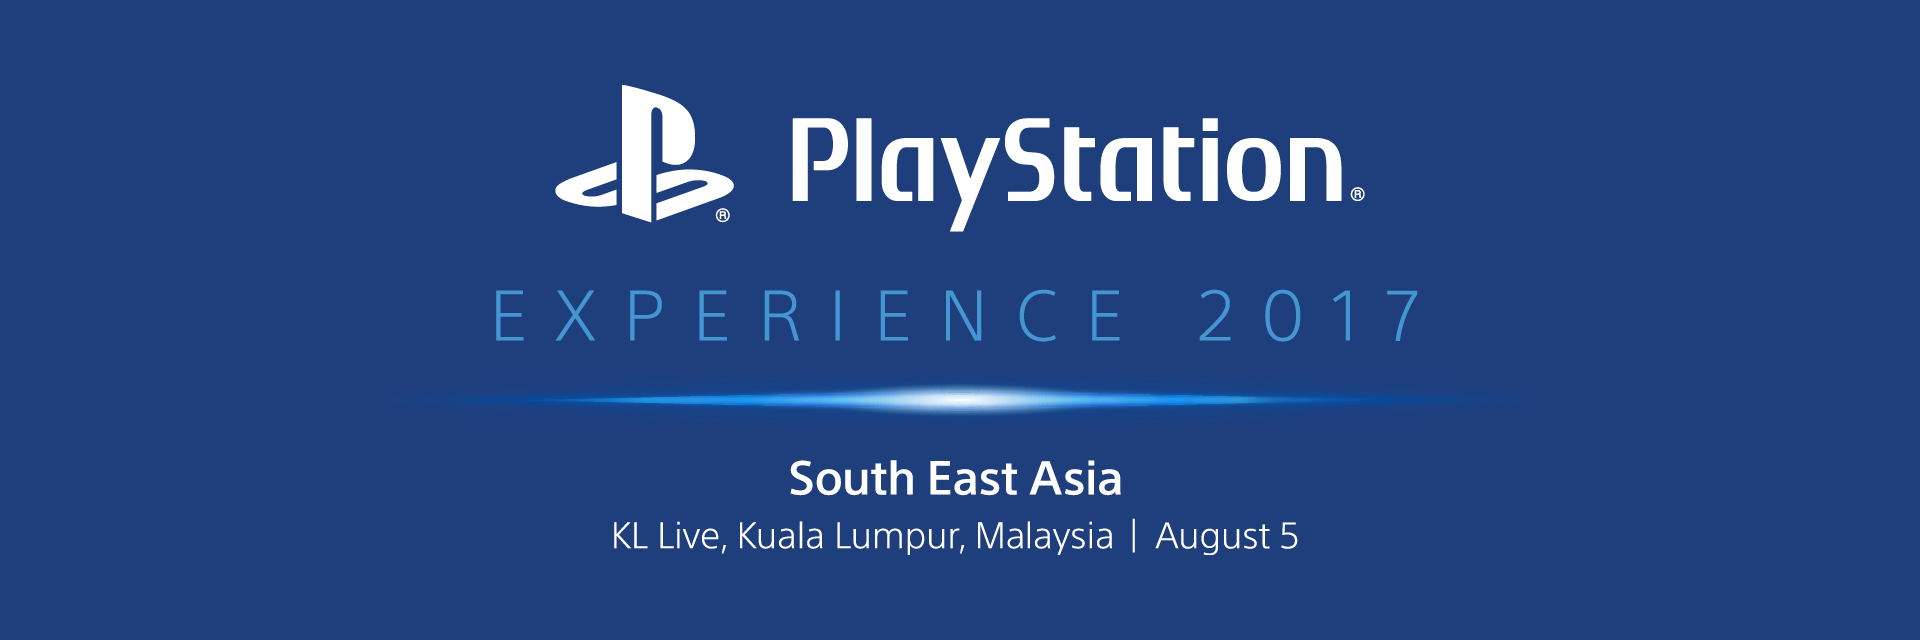 PlayStation Experience SEA 2017